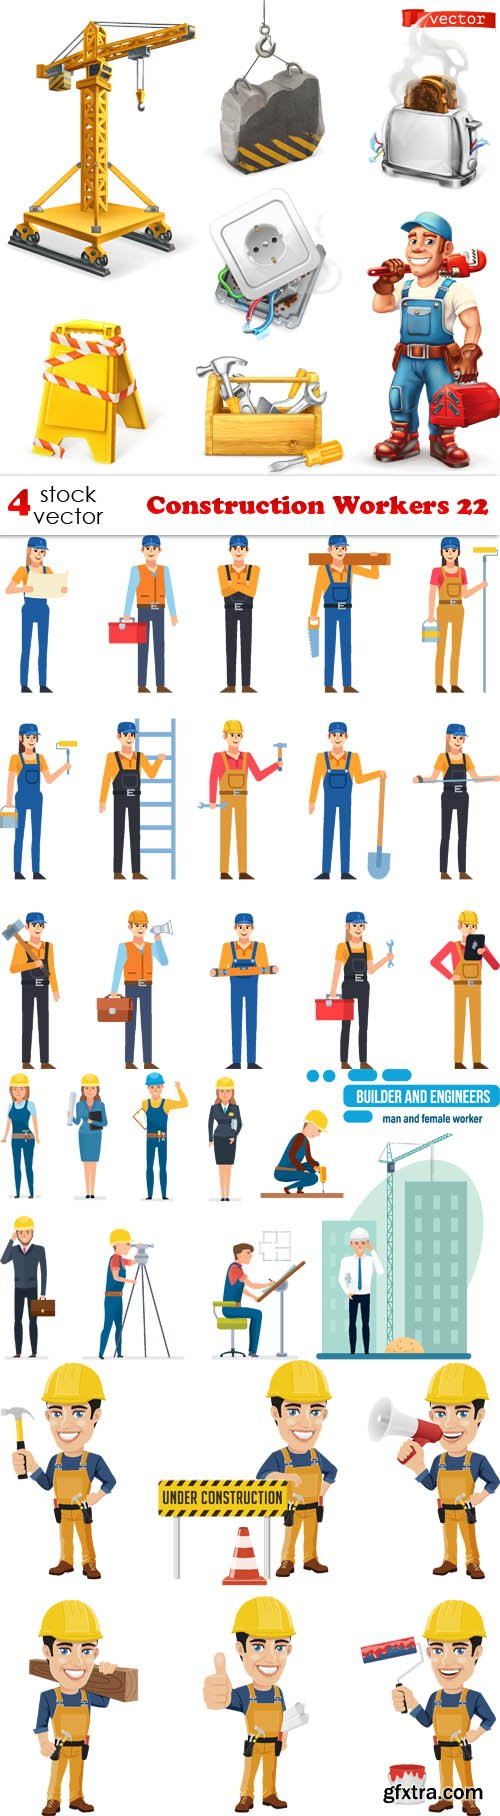 Vectors - Construction Workers 22